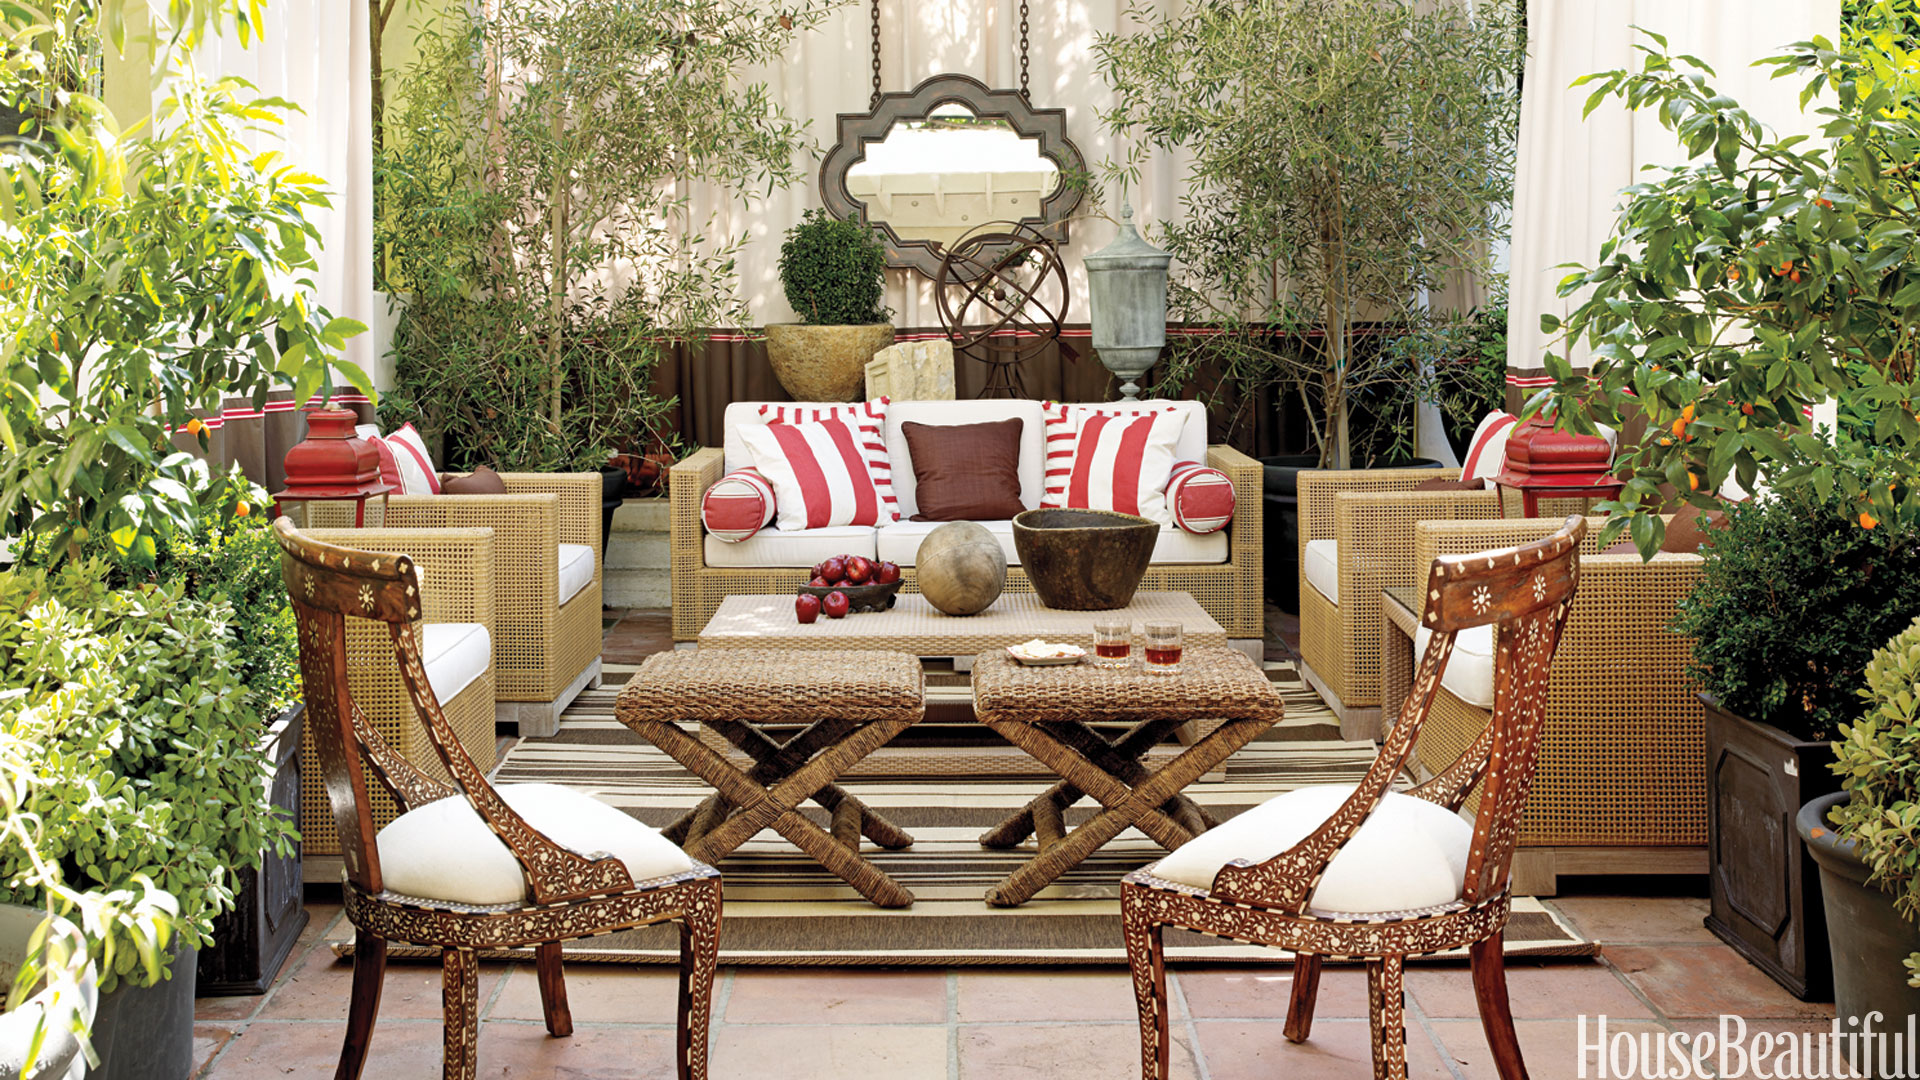 Exterior Wall Decoration Ideas: 10 Outdoor Decorating Ideas